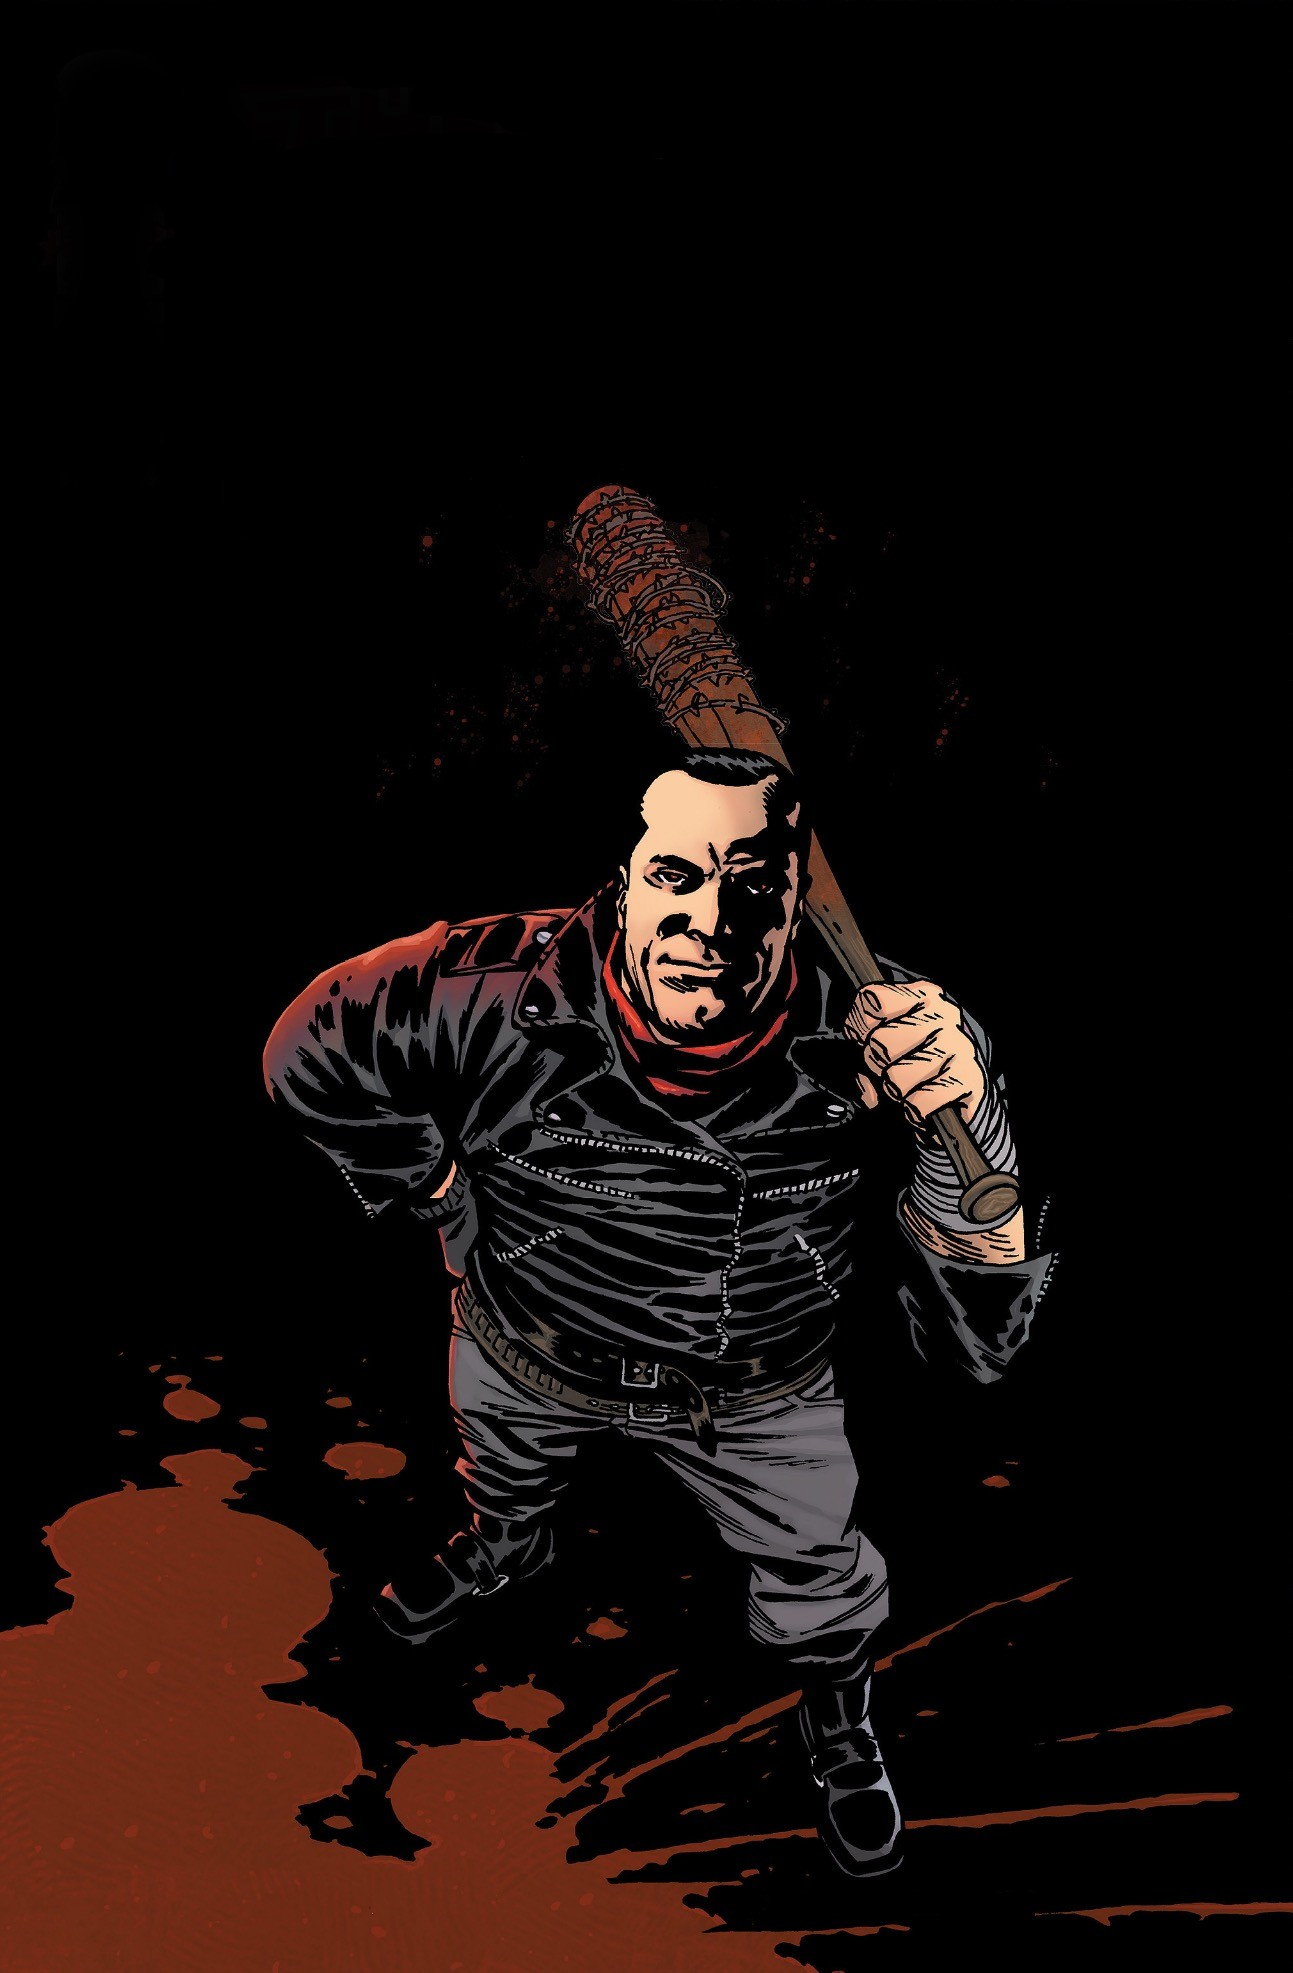 With a little editing I made a phone wallpaper of Negan from the comic  cover.